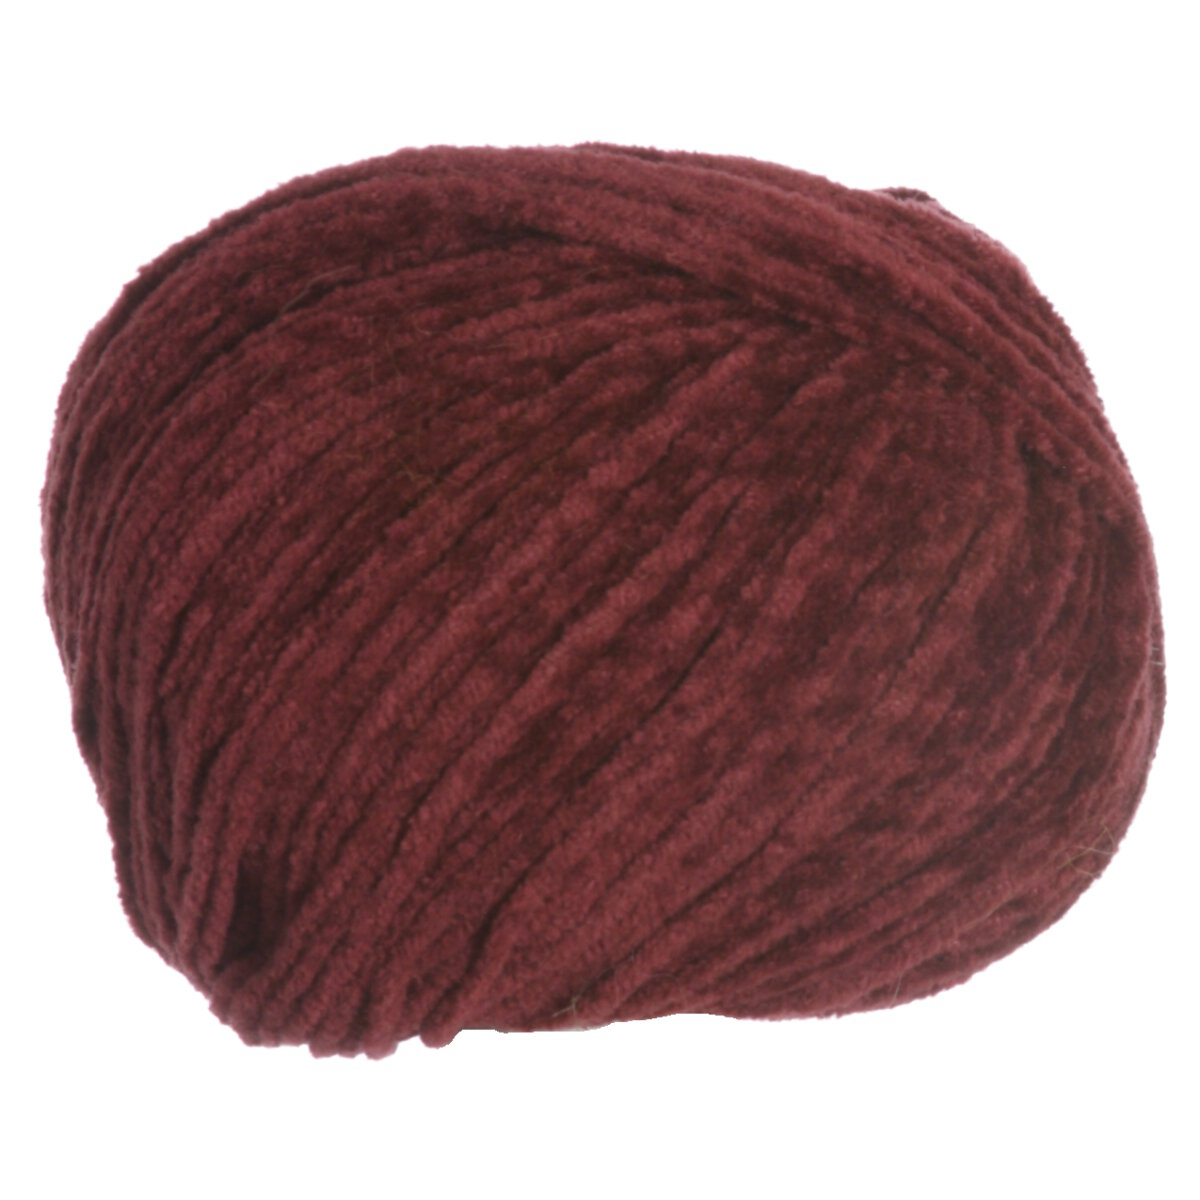 Rowan Chenille Yarn - 755 Carafe at Jimmy Beans Wool